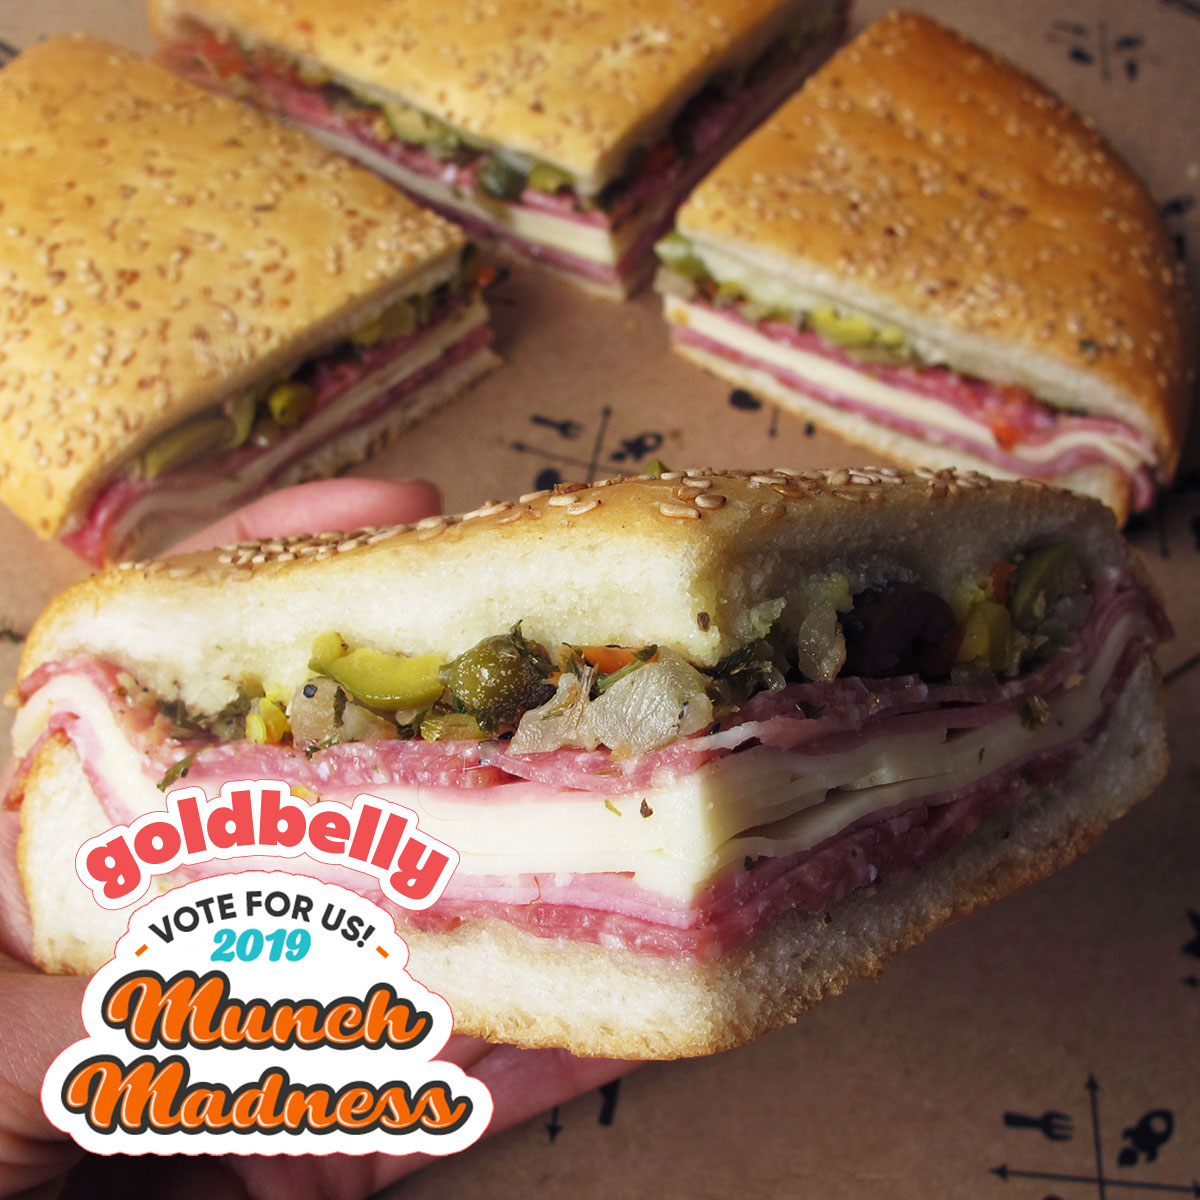 Goldbelly-Munch-Madness-Social-1200-Square-Vote-V1-1.jpg